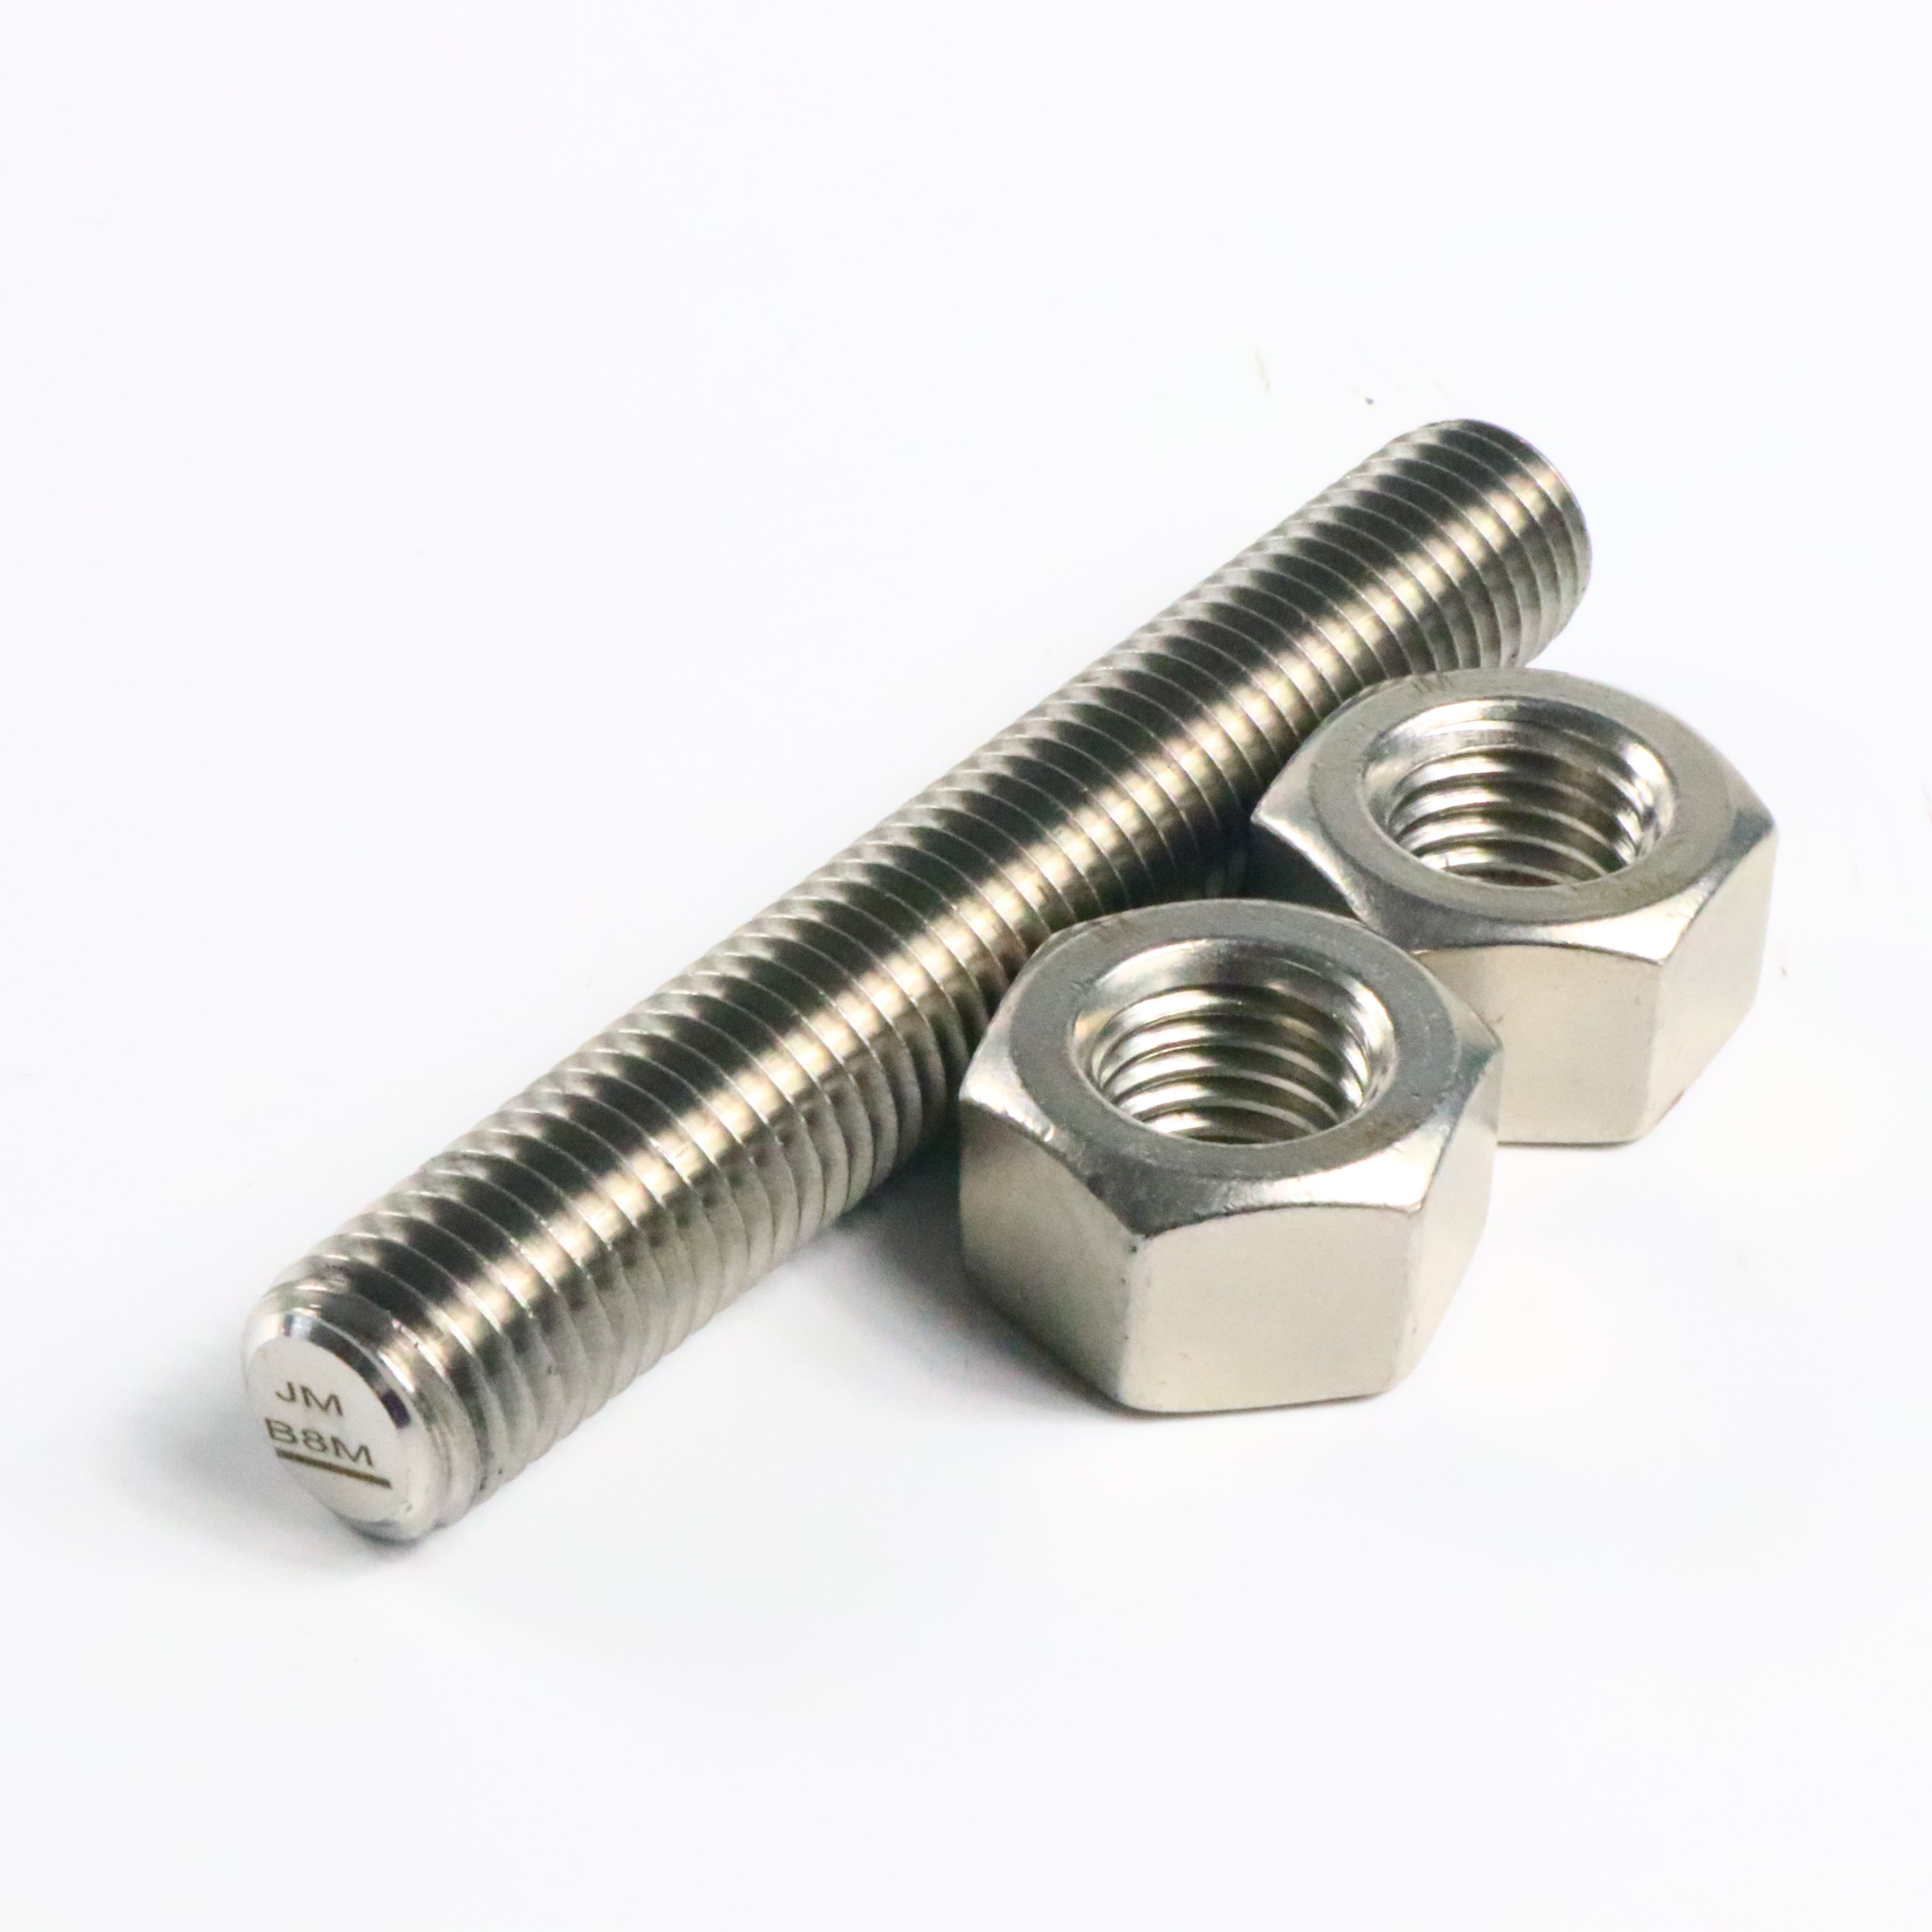 SS316 L ASTM A193 B8 B8m Class2 Stainless Steel Stud Bolt And Nut